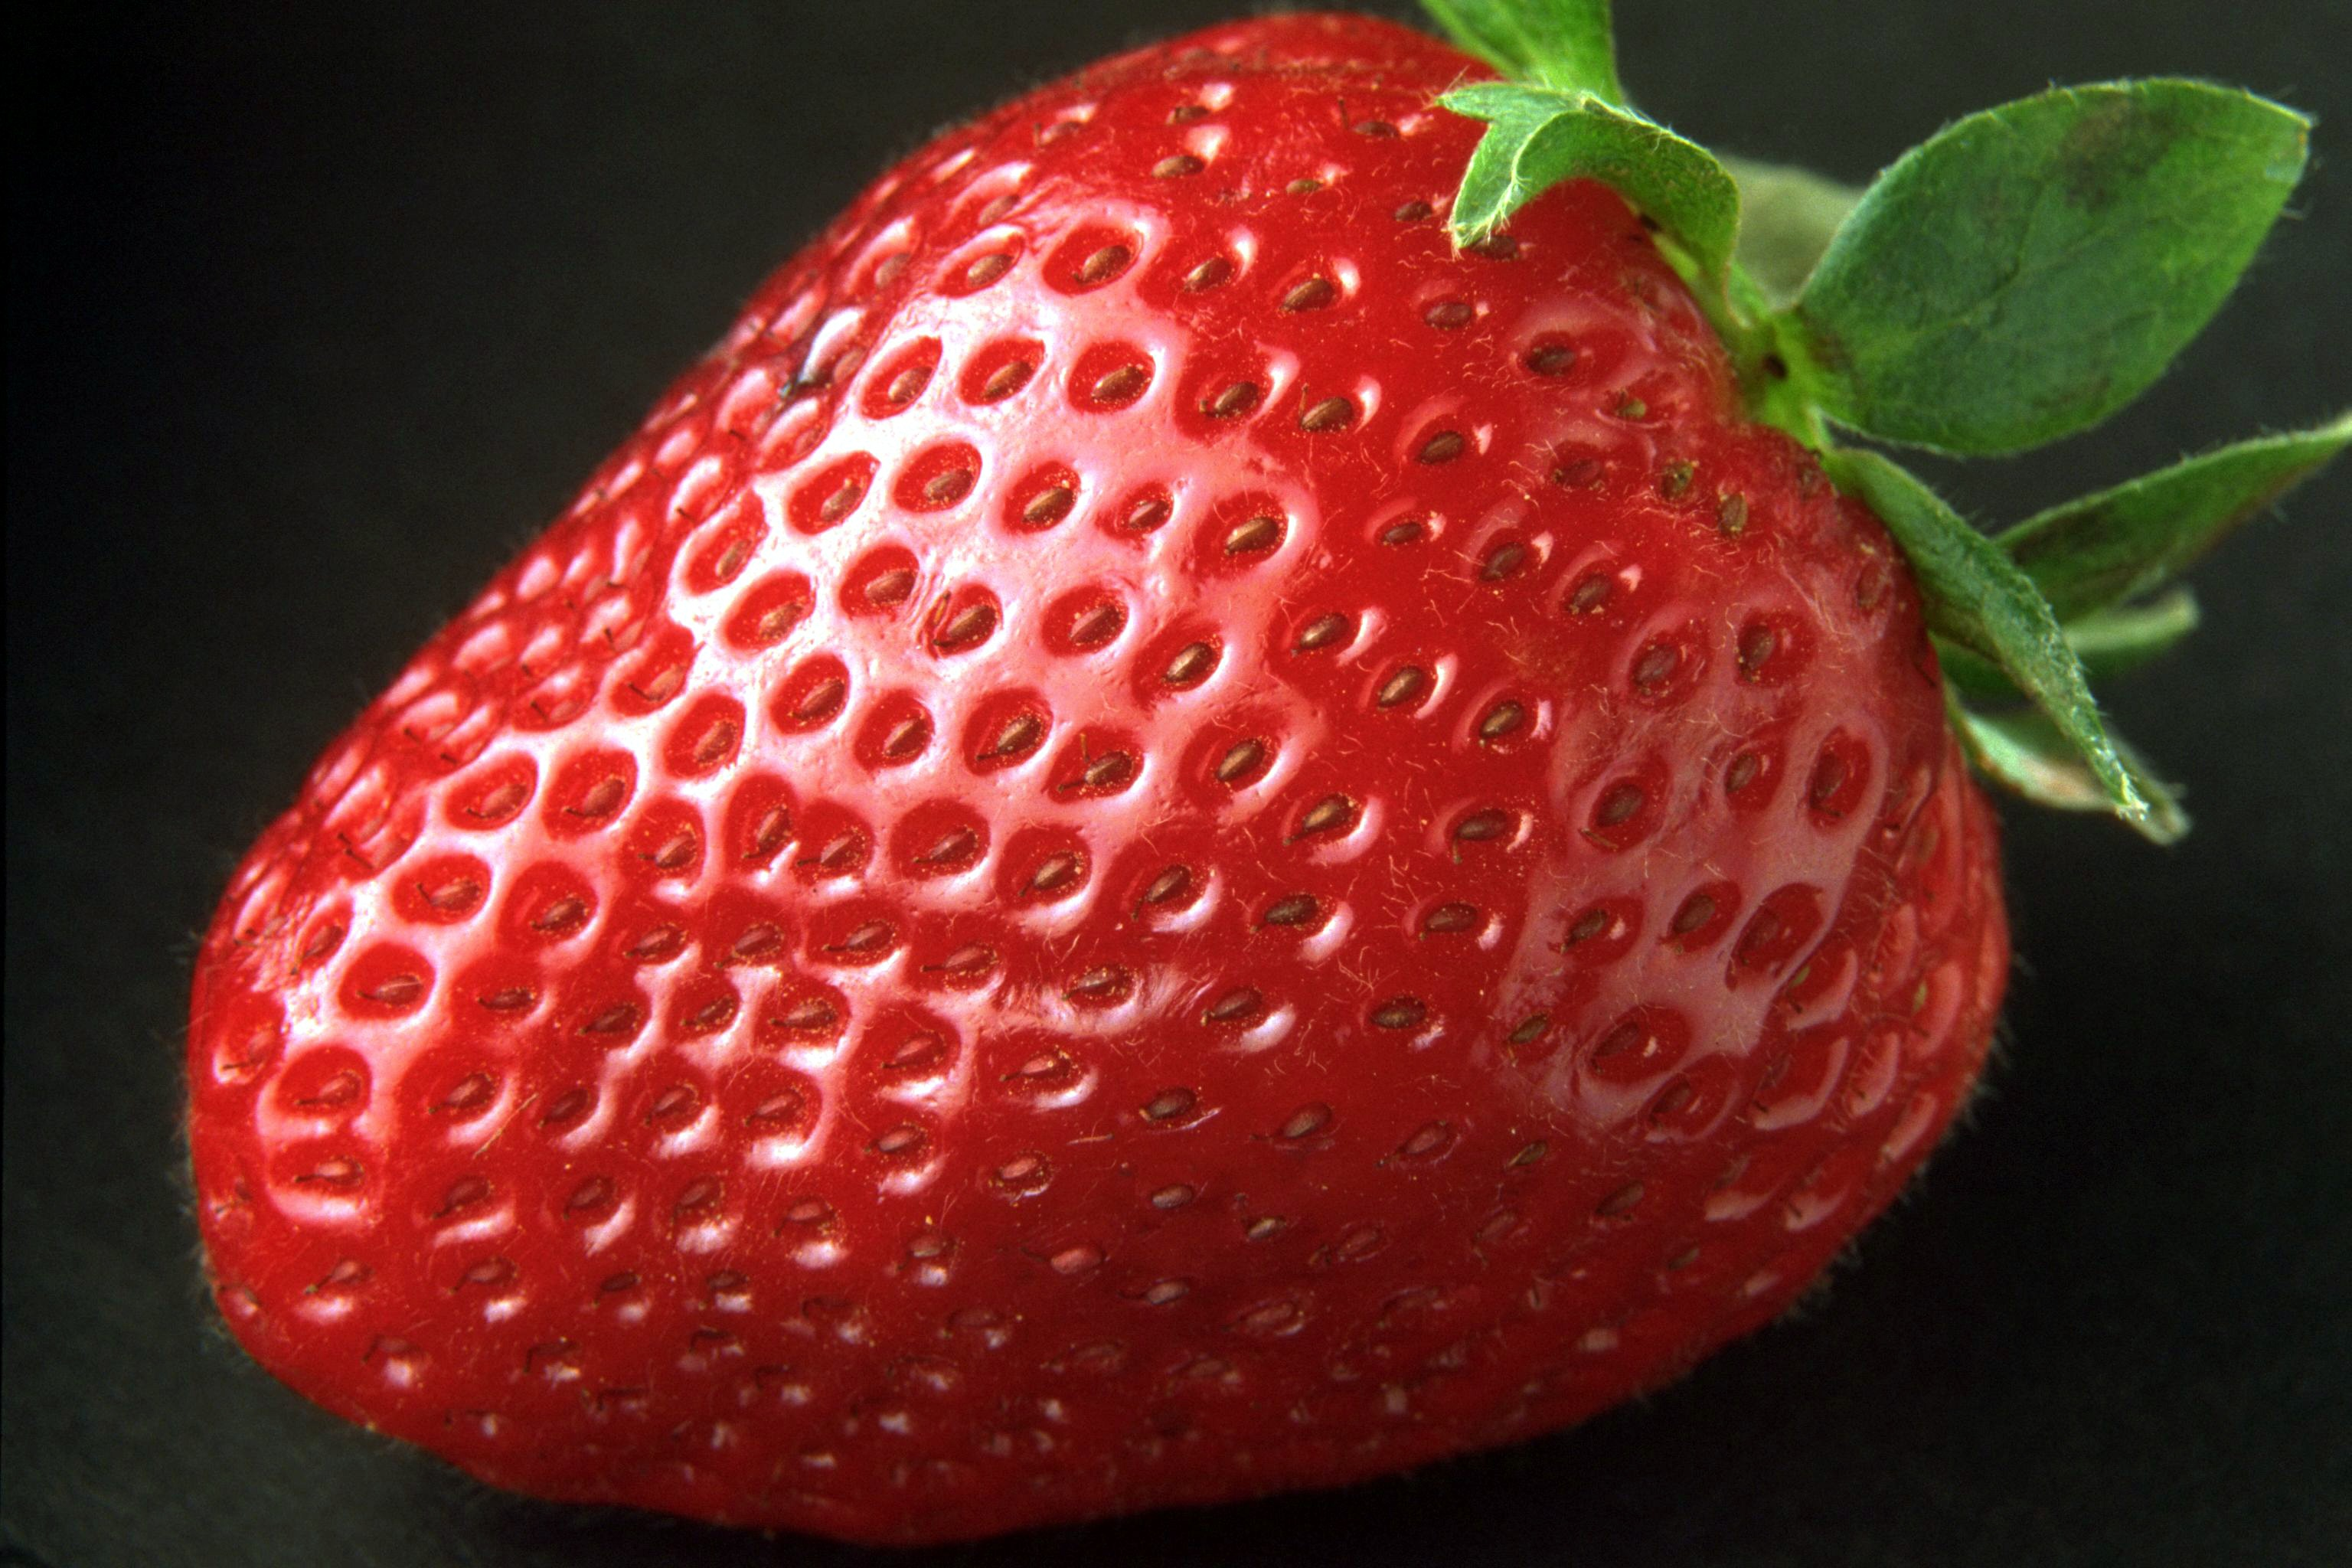 102097 download wallpaper Food, Strawberry, Berry, Ripe, Appetizing screensavers and pictures for free